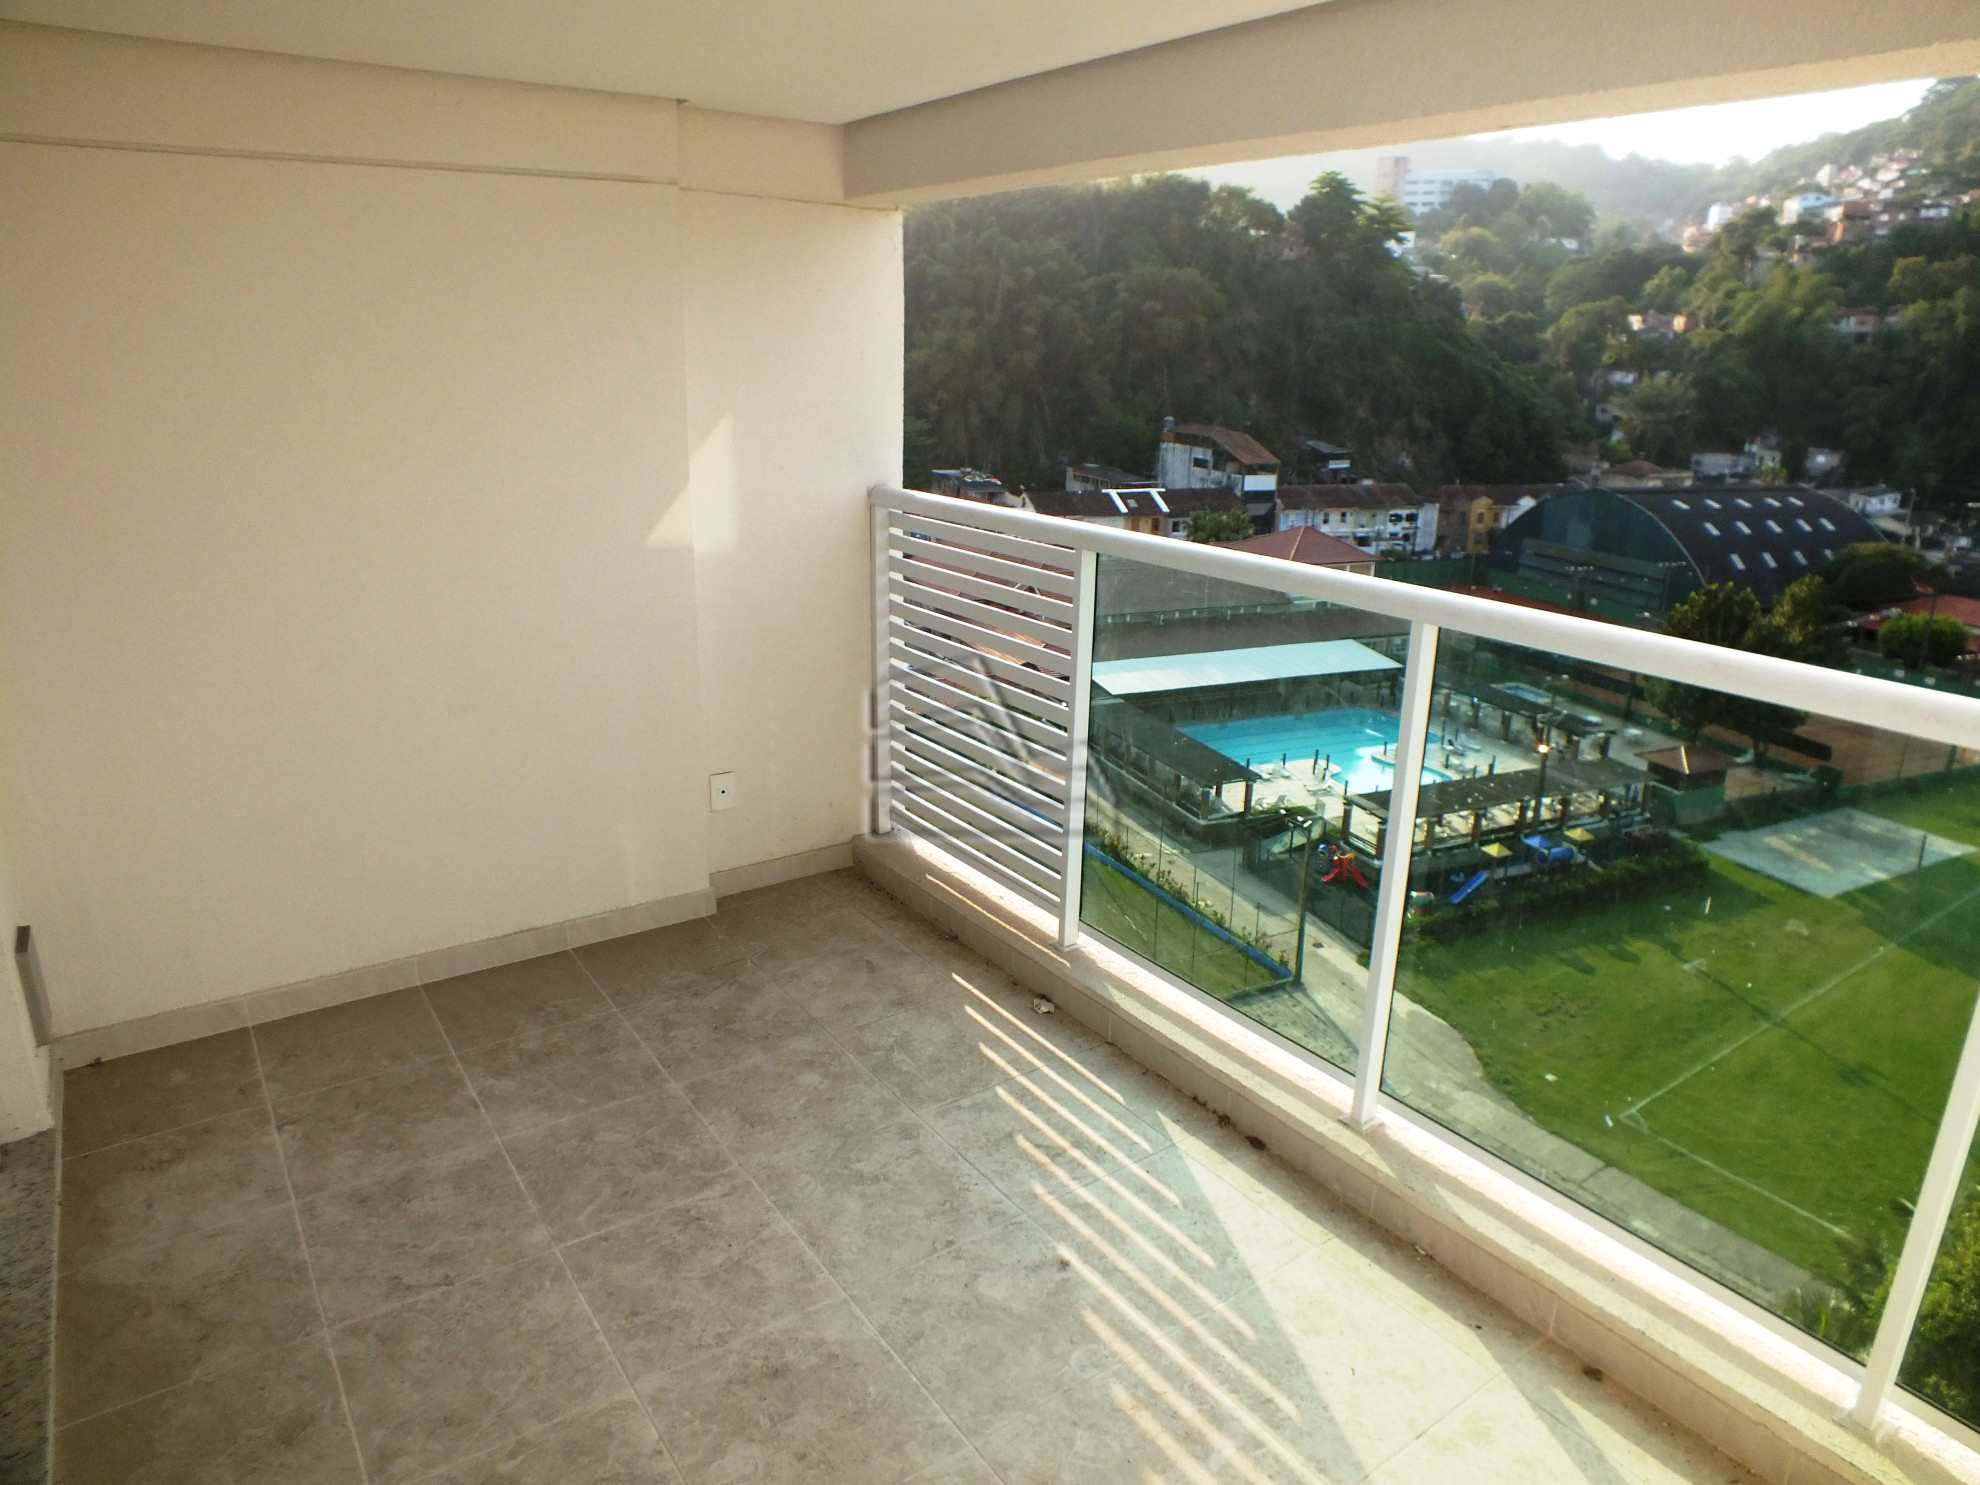 Mirante 2 dorm 66area 07